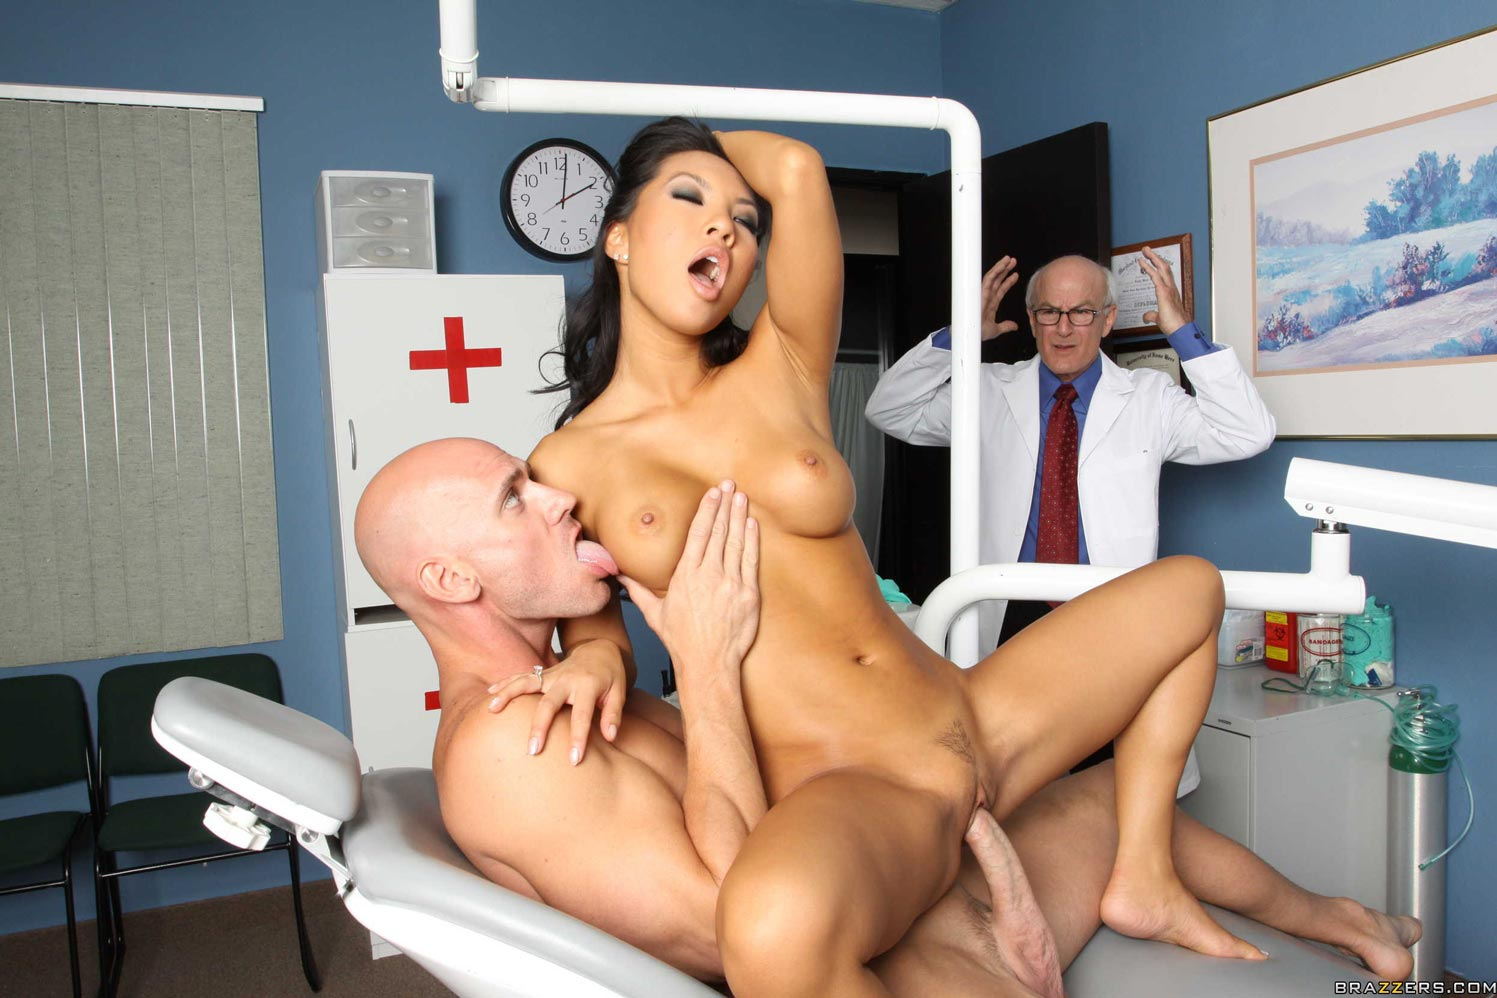 Hunky doctor fucked his nurse in chamber